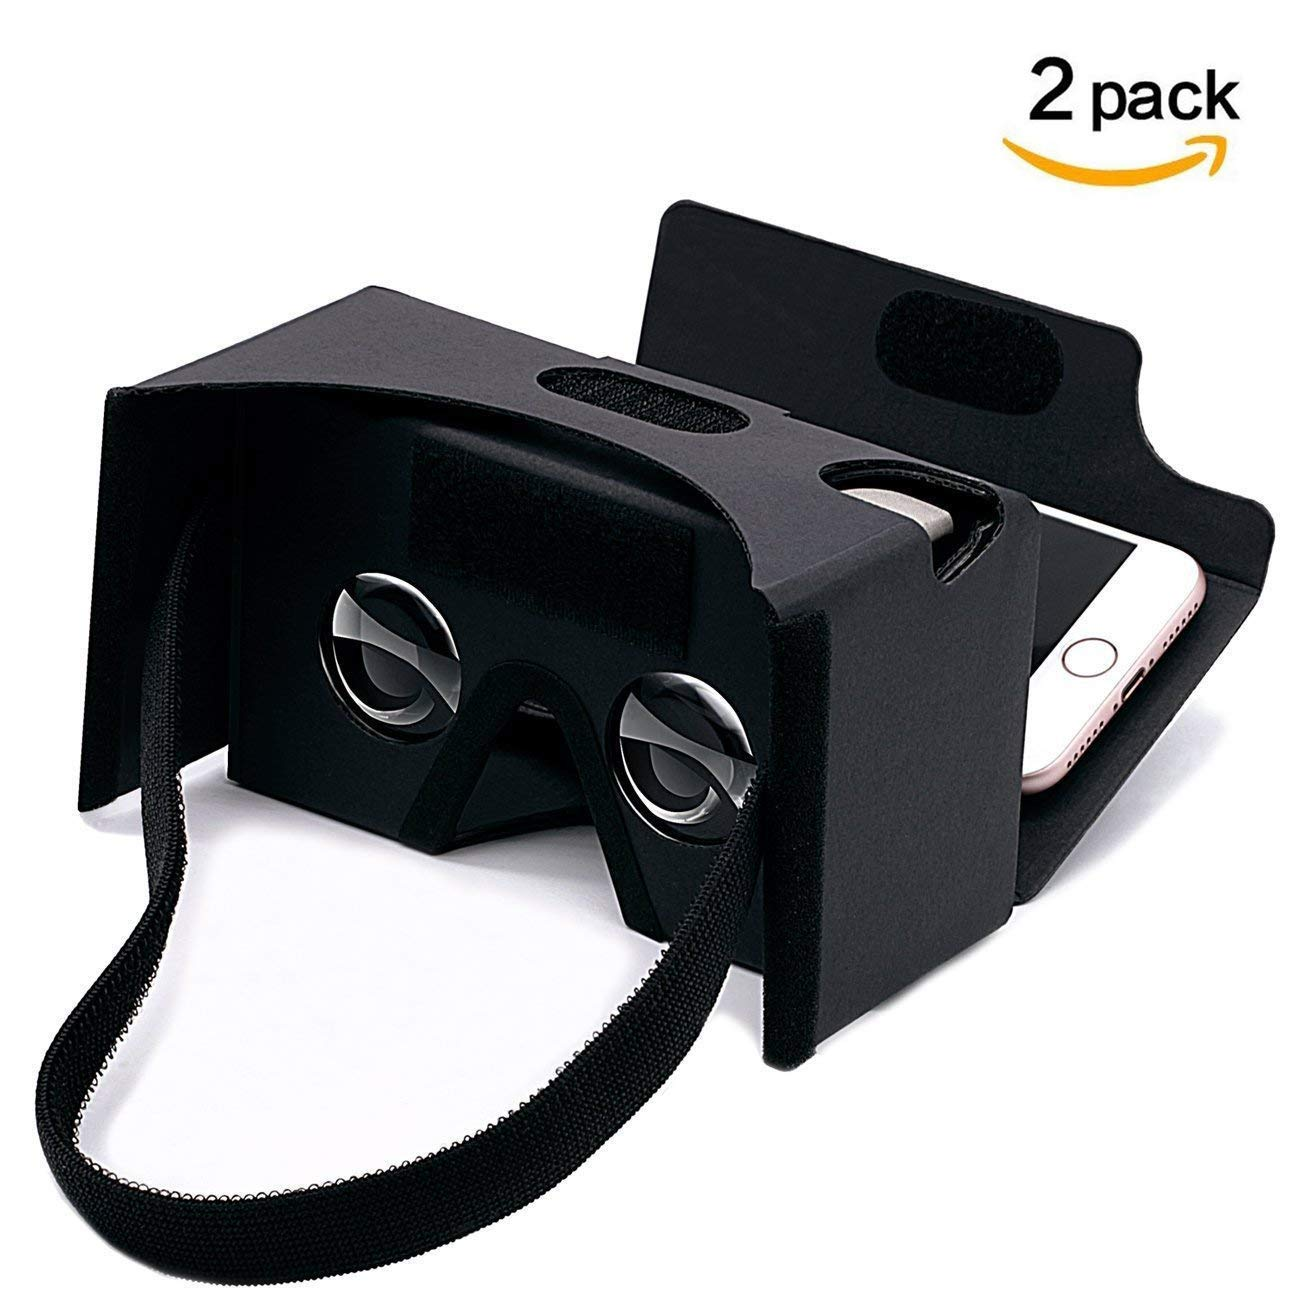 Google Cardboard,2 Pack VR Headsets 3D Box Virtual Reality Glasses with Big Clear 3D Optical Lens and Comfortable Head Strap for All 3-6 Inch Smartphones (VR2.0 Black, 2 Pack) by Printor